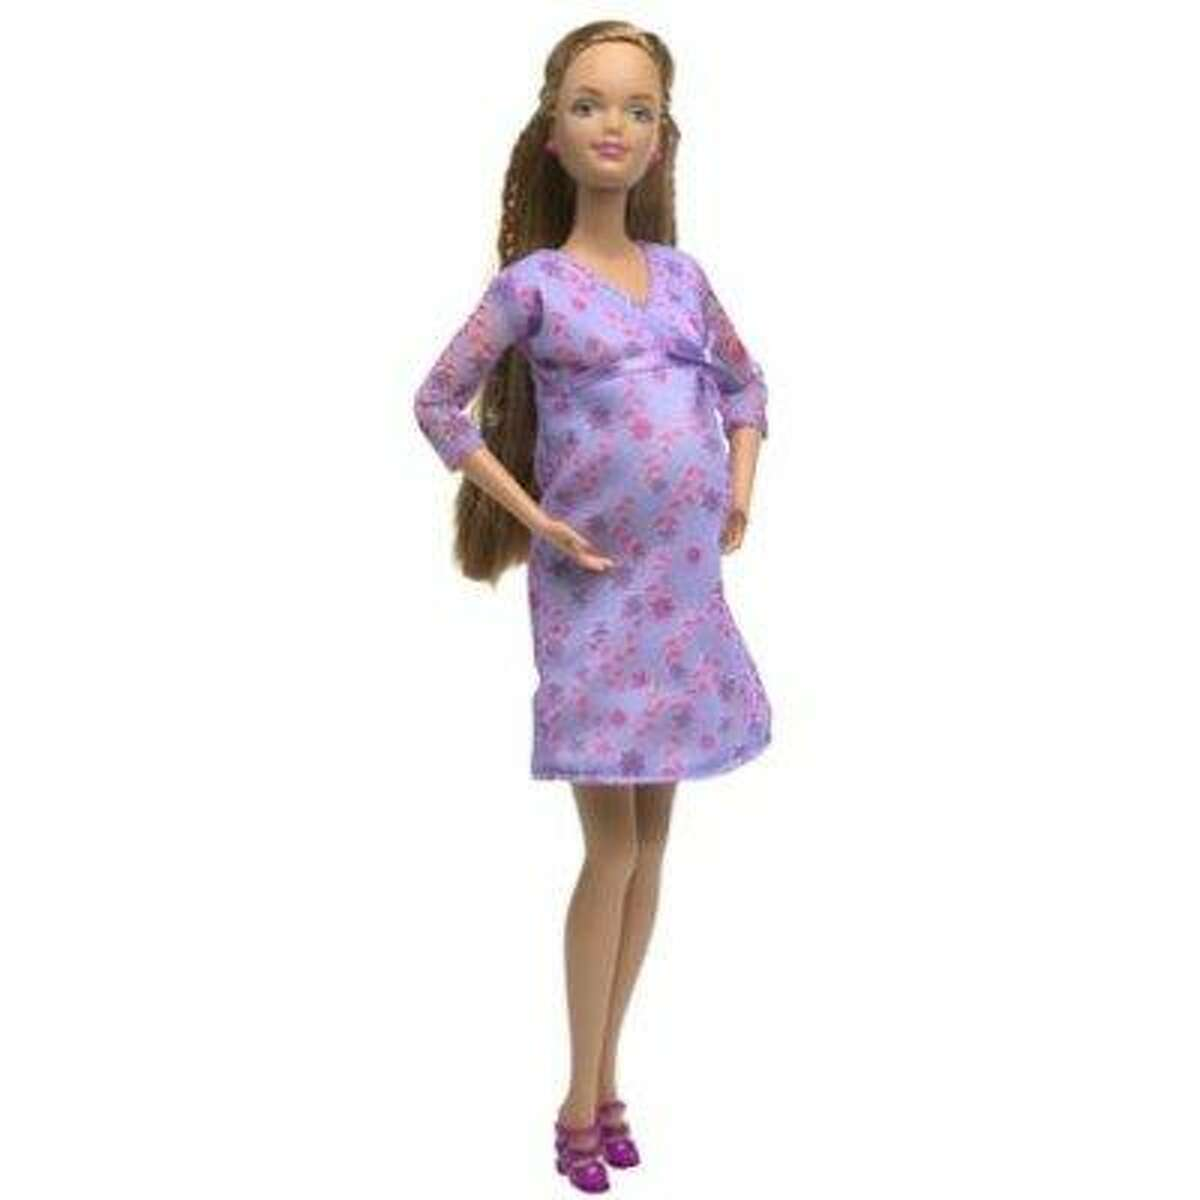 Some parents found Barbie's friend Midge's pregnancy to be controversial. The doll was later altered to include a wedding ring. More disturbing than Midge's marital status is how the doll get pregnant considering Ken dolls have no genitalia.